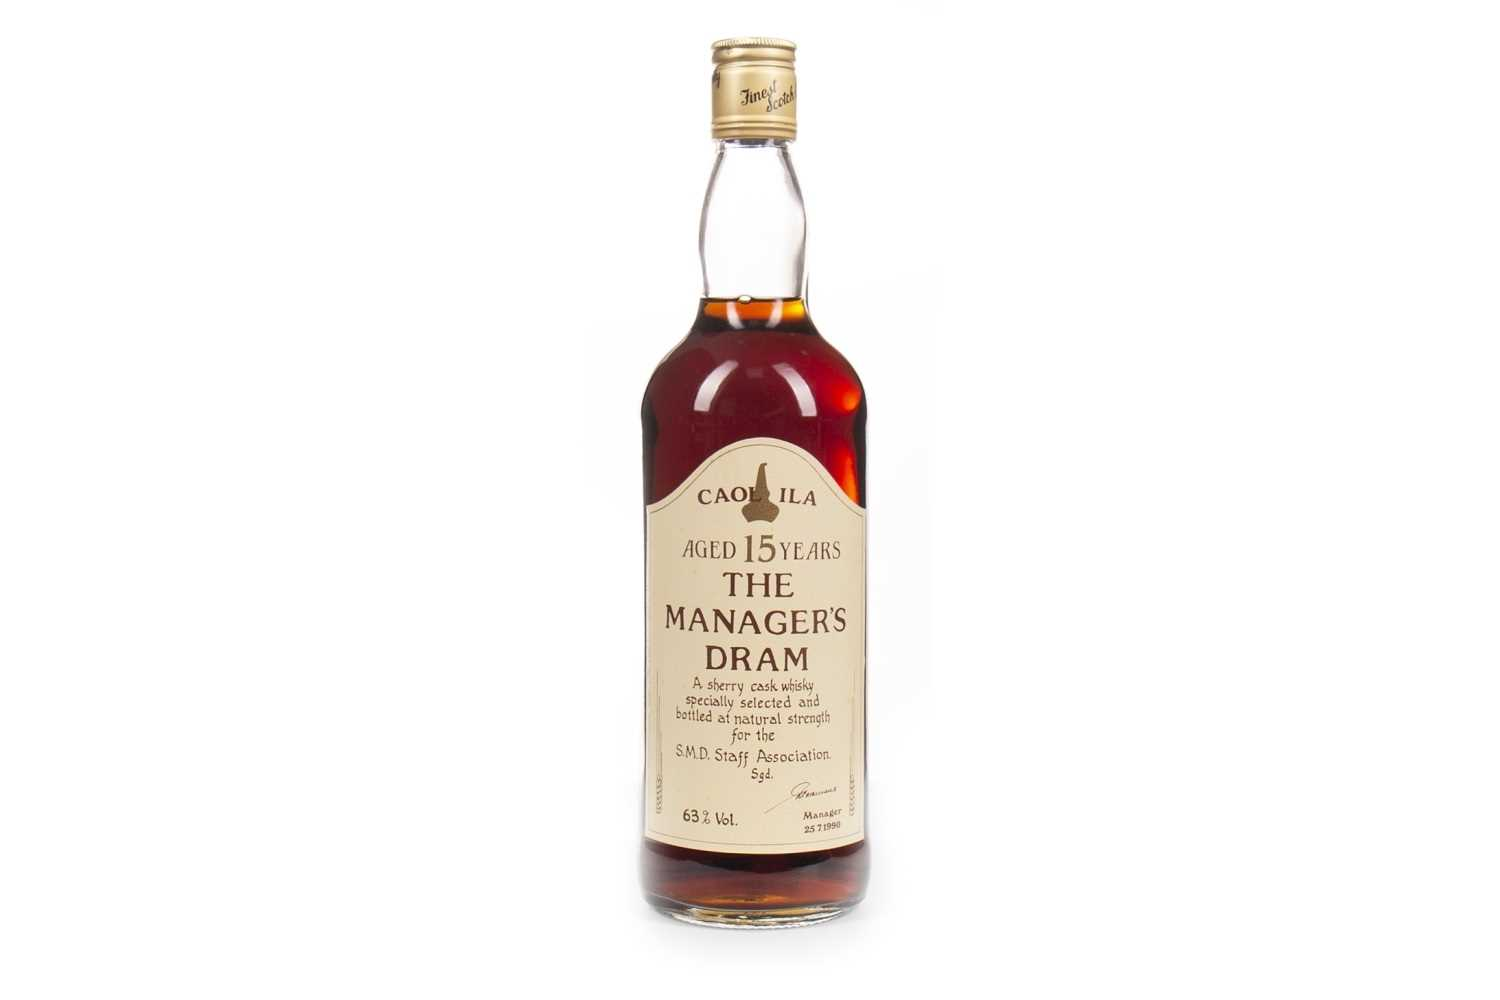 Lot 217-CAOL ILA MANAGERS DRAM AGED 15 YEARS